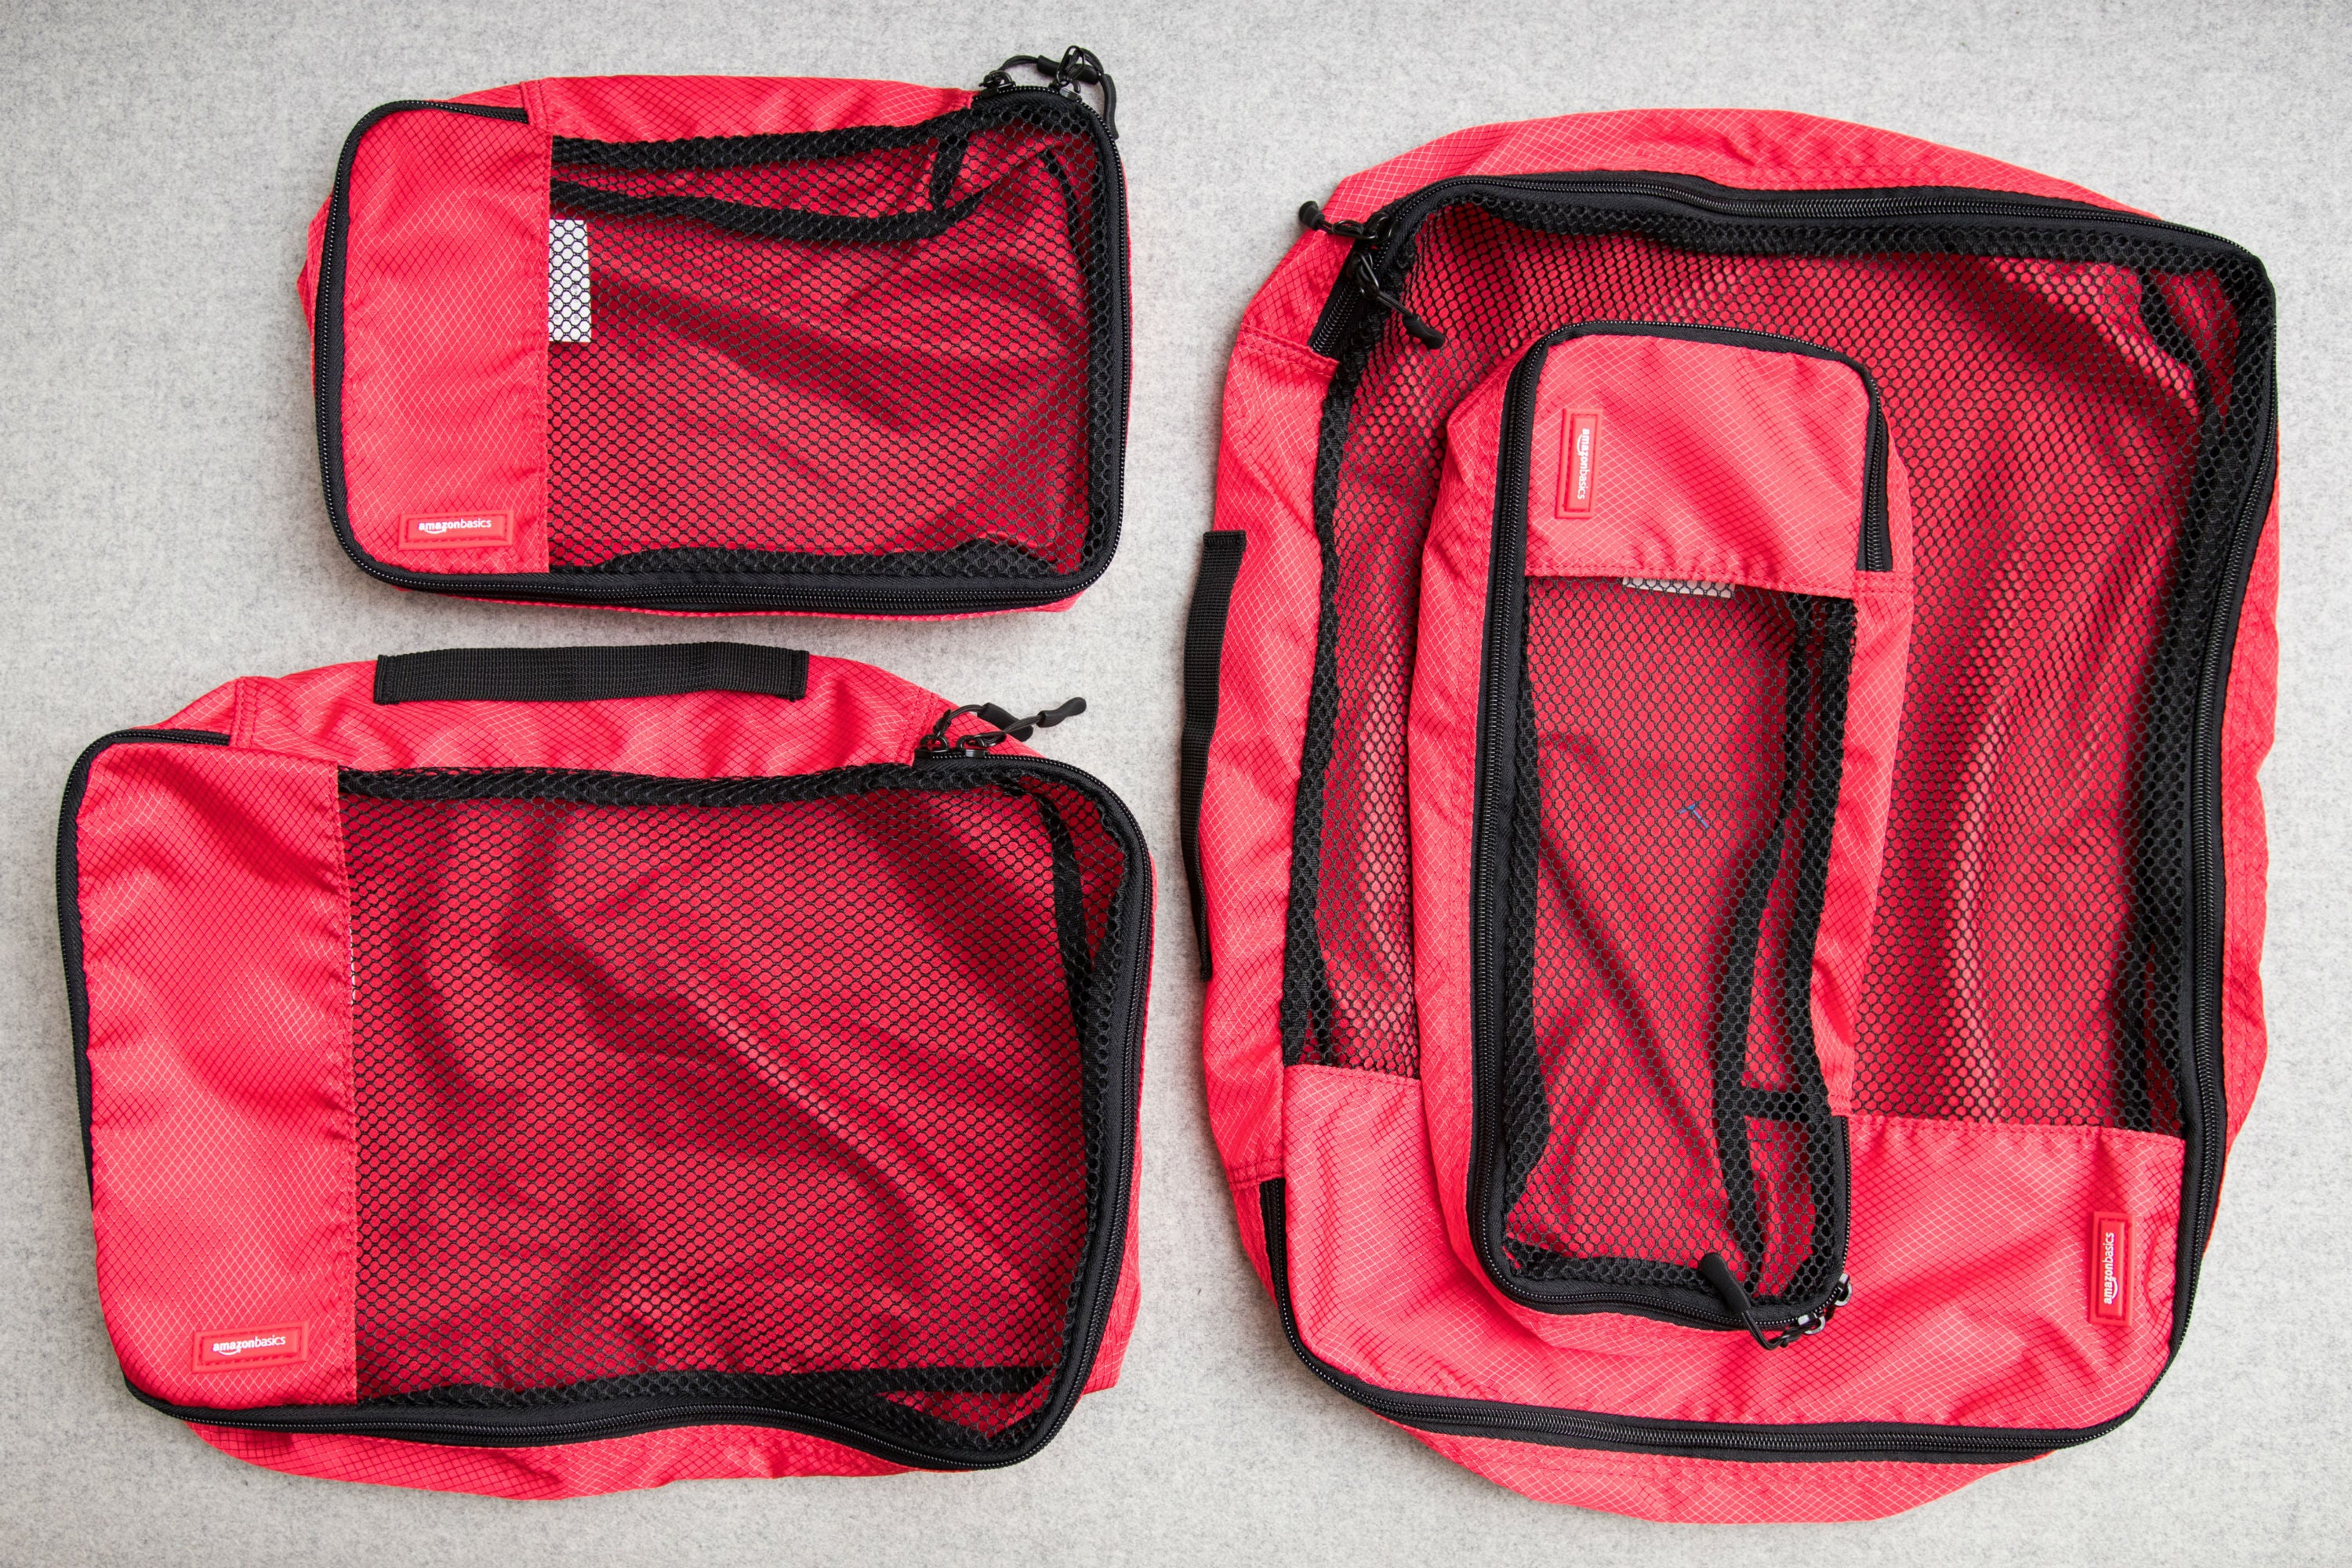 AmazonBasics packing cubes photographed from overhead